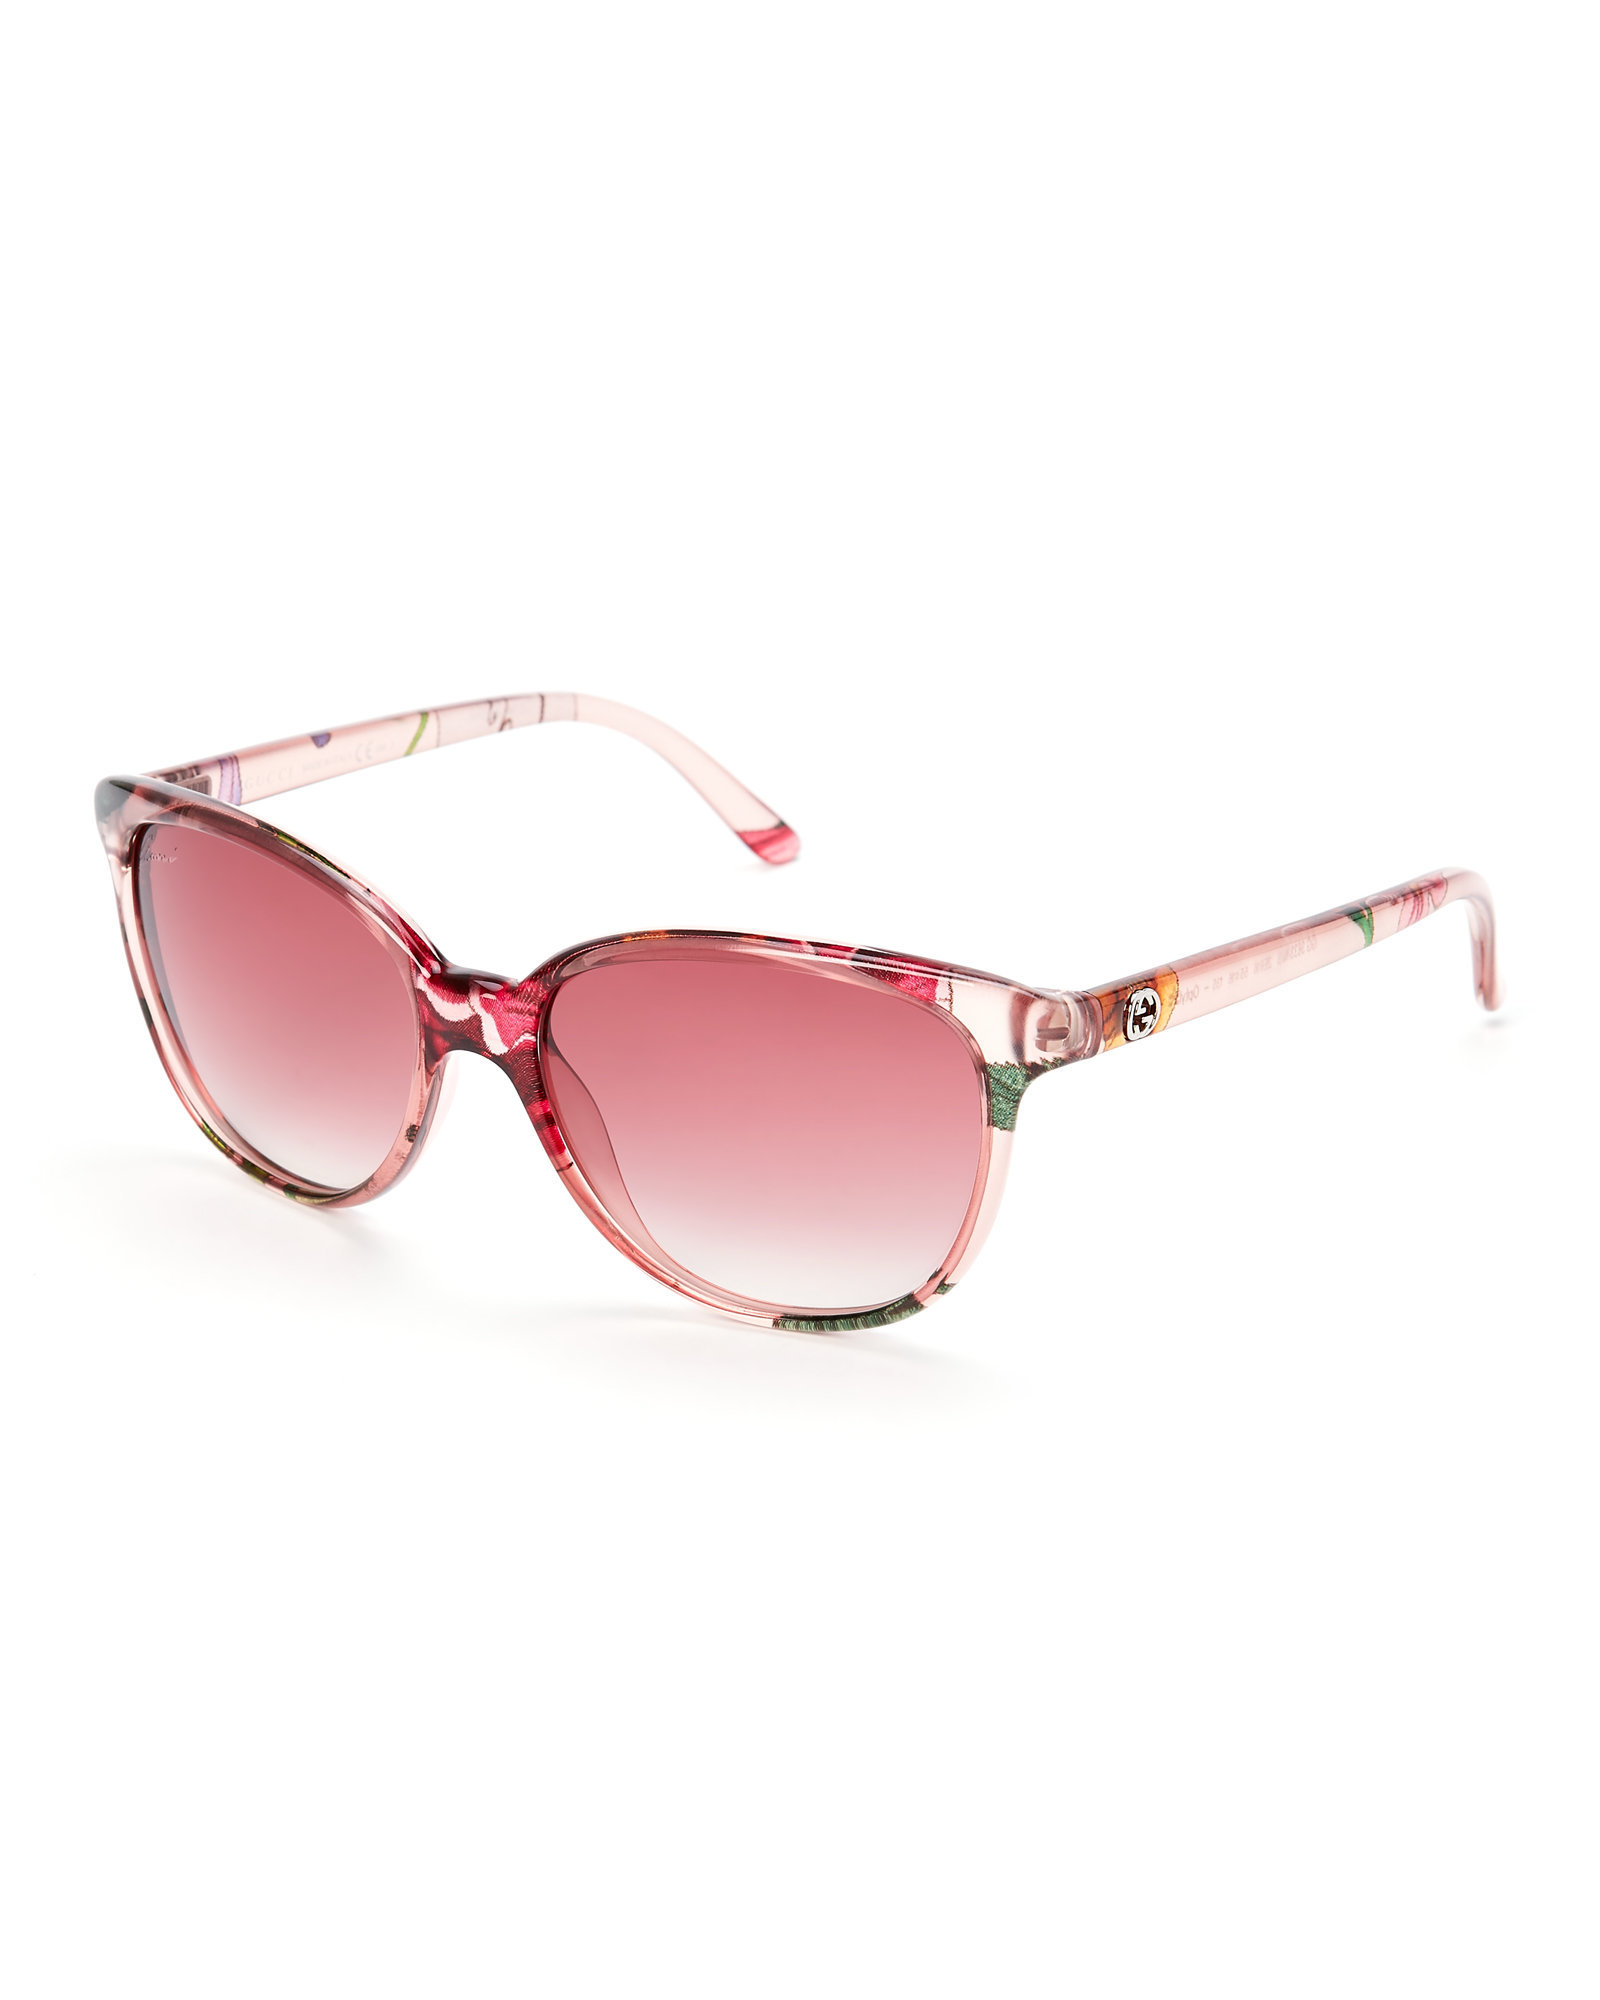 a6559c7dd Gucci Pink Floral Gg 3633/S Oval Sunglasses in Pink - Lyst